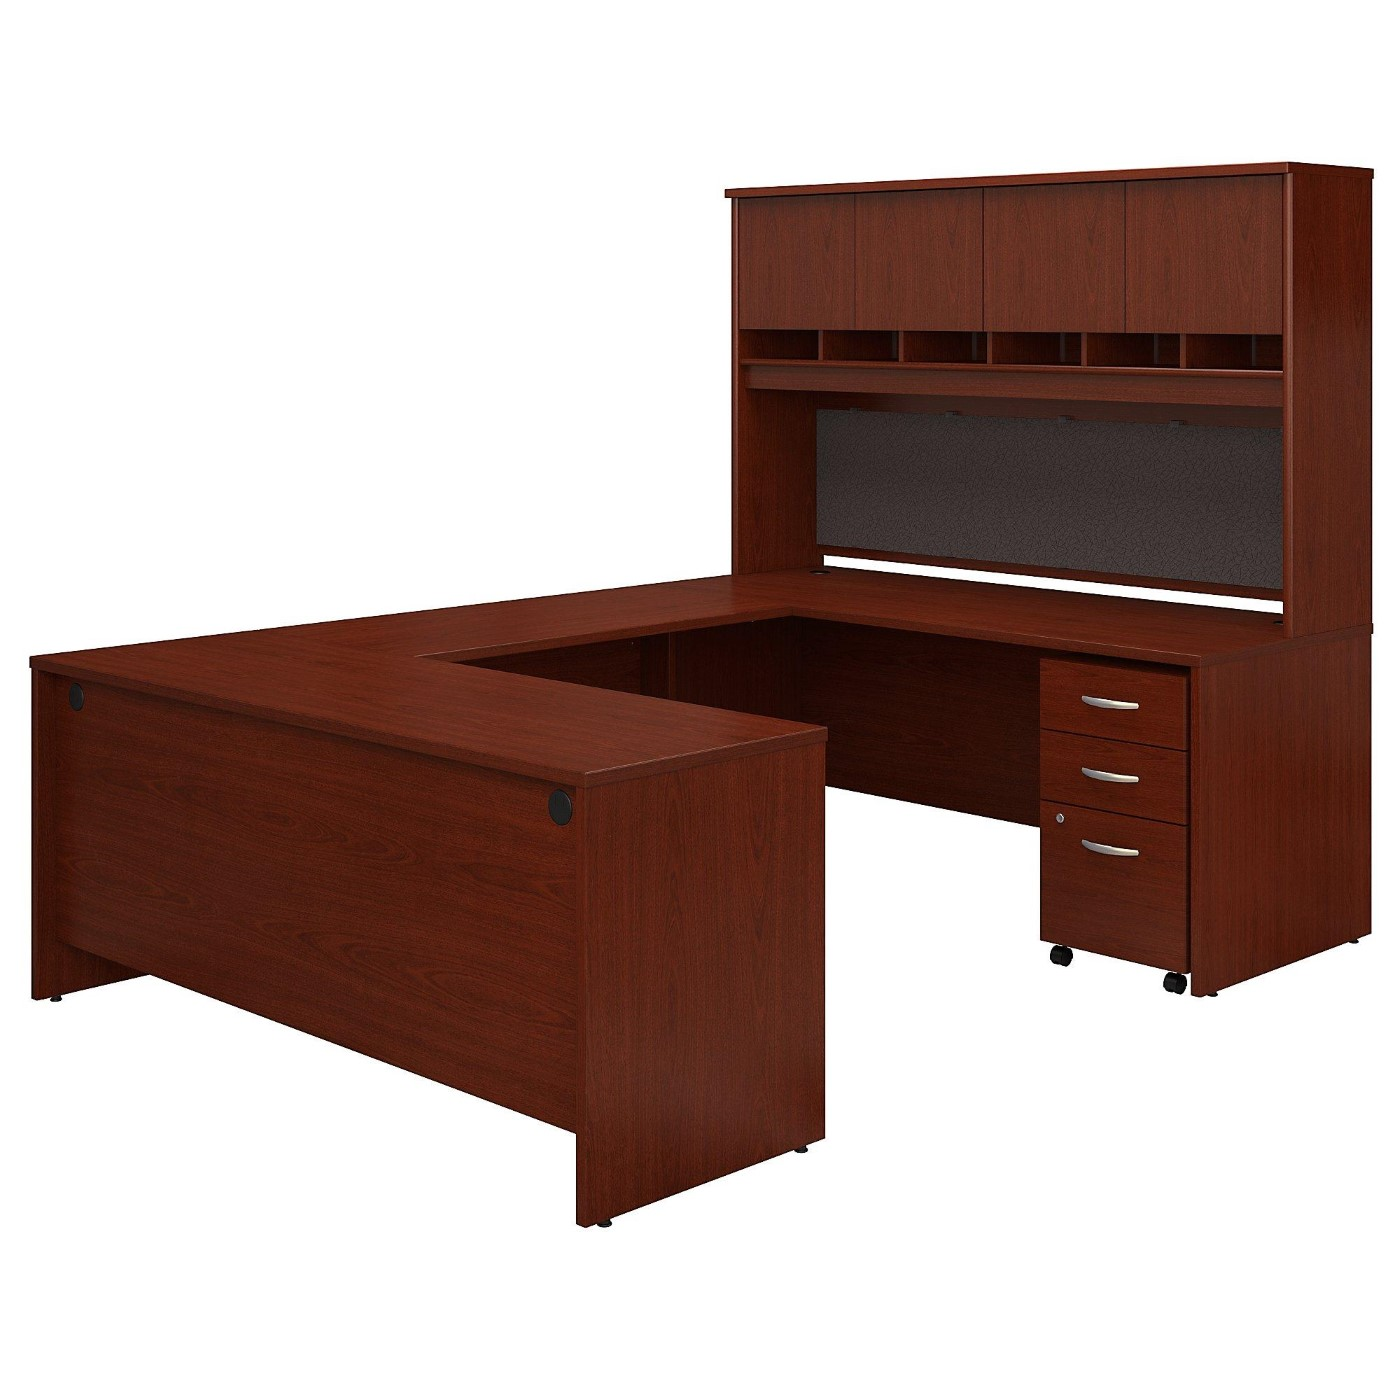 BUSH BUSINESS FURNITURE SERIES C 72W U SHAPED DESK WITH HUTCH AND STORAGE. FREE SHIPPING</font></b></font>&#x1F384<font color=red><b>ERGONOMICHOME HOLIDAY SALE - ENDS DEC. 17, 2019</b></font>&#x1F384